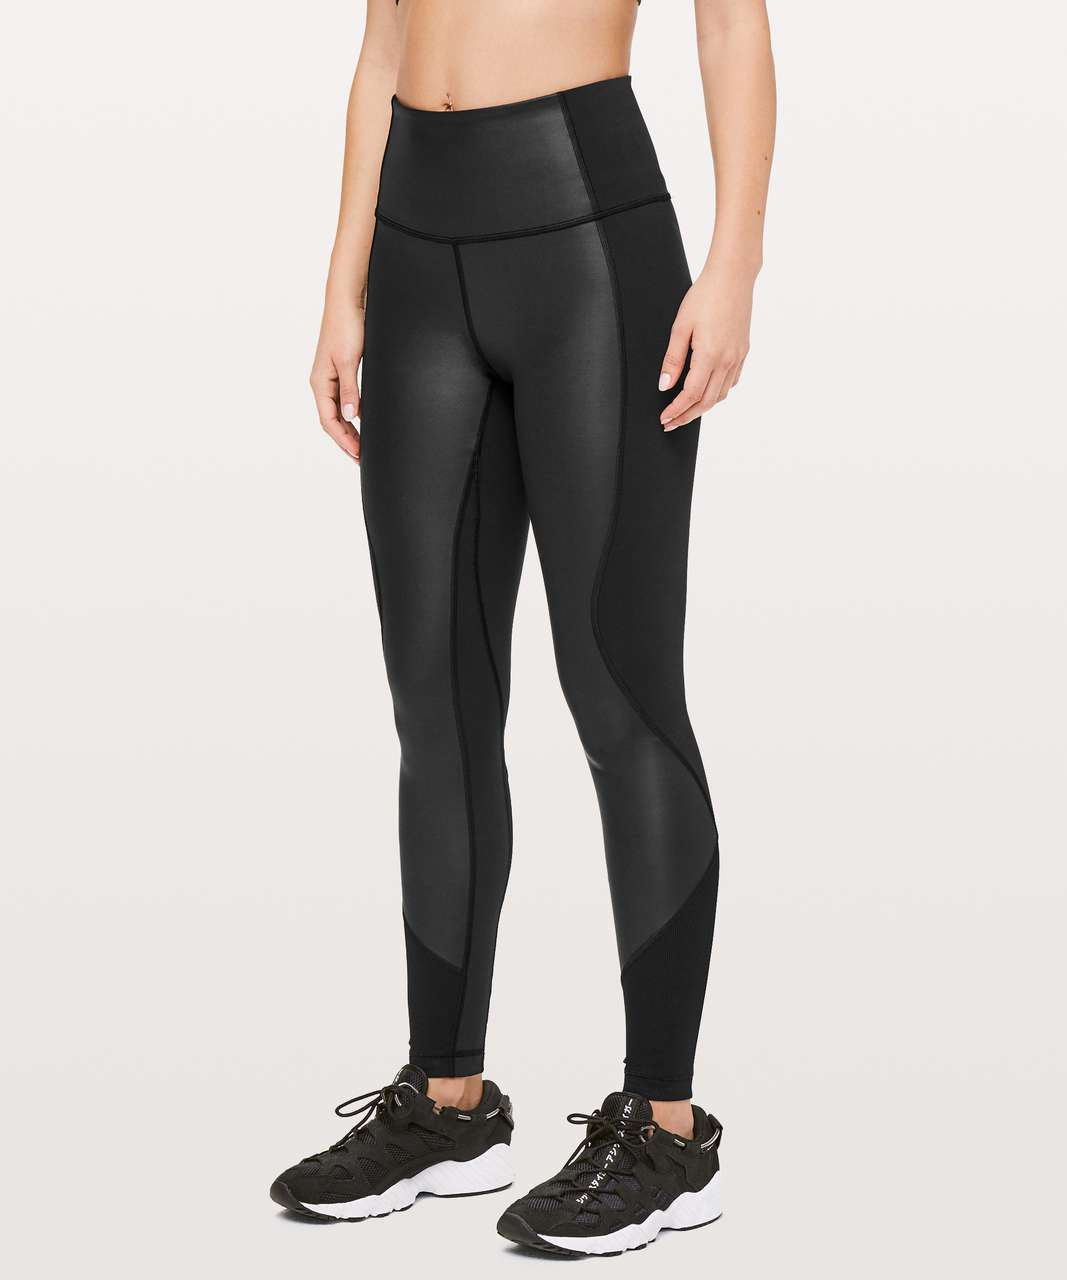 "Lululemon Wunder Under High-Rise Tight *Shine 28"" - Black"